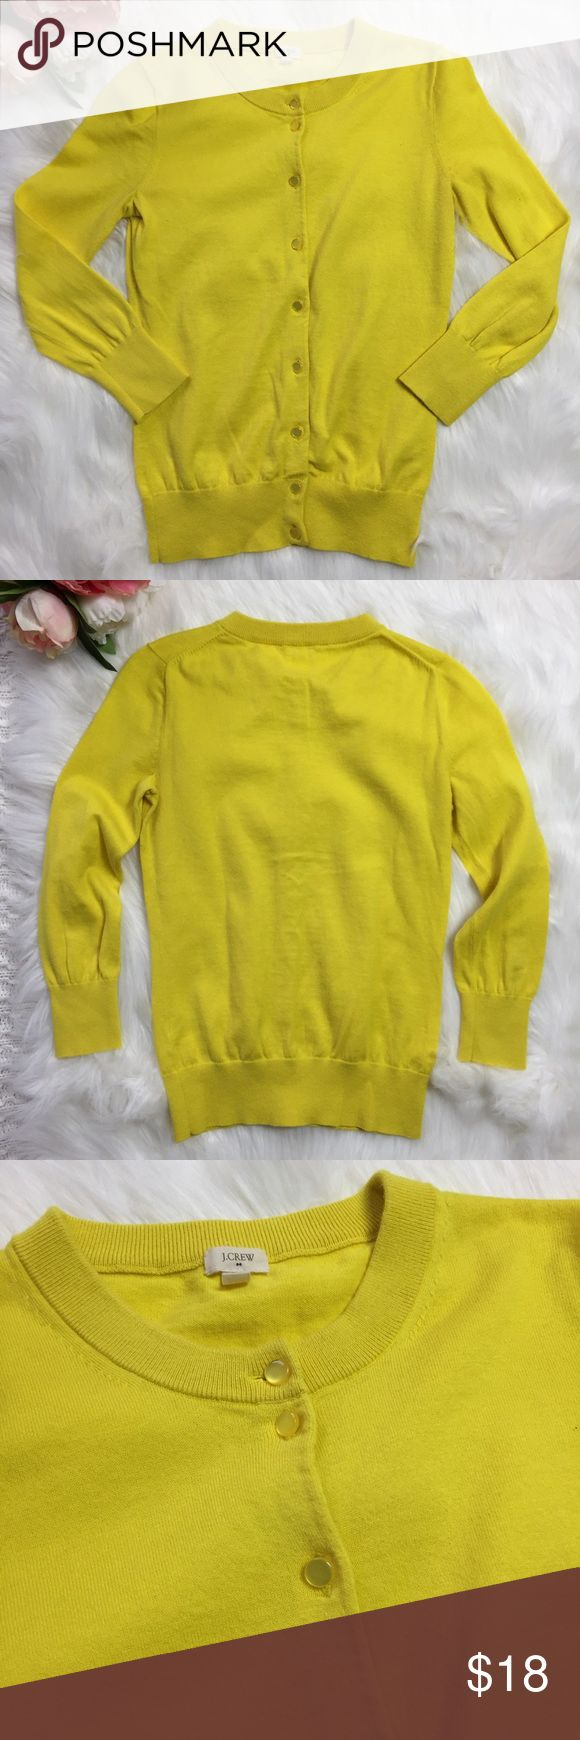 J. Crew Yellow Claire Cardigan 3/4 Sleeve XXS J. Crew Yellow Claire Cardigan 3/4 Sleeve   J. Crew Factory 100% Cotton Fitted Hits slightly above hip, with three quarter length sleeves. Rib trim at cuffs and hem. Very versatile fit and style. Wear it with jeans over a camisole, with a pencil skirt to work, or over a light dress during the summer.  Excellent used condition. No trades. J. Crew Factory Sweaters Cardigans